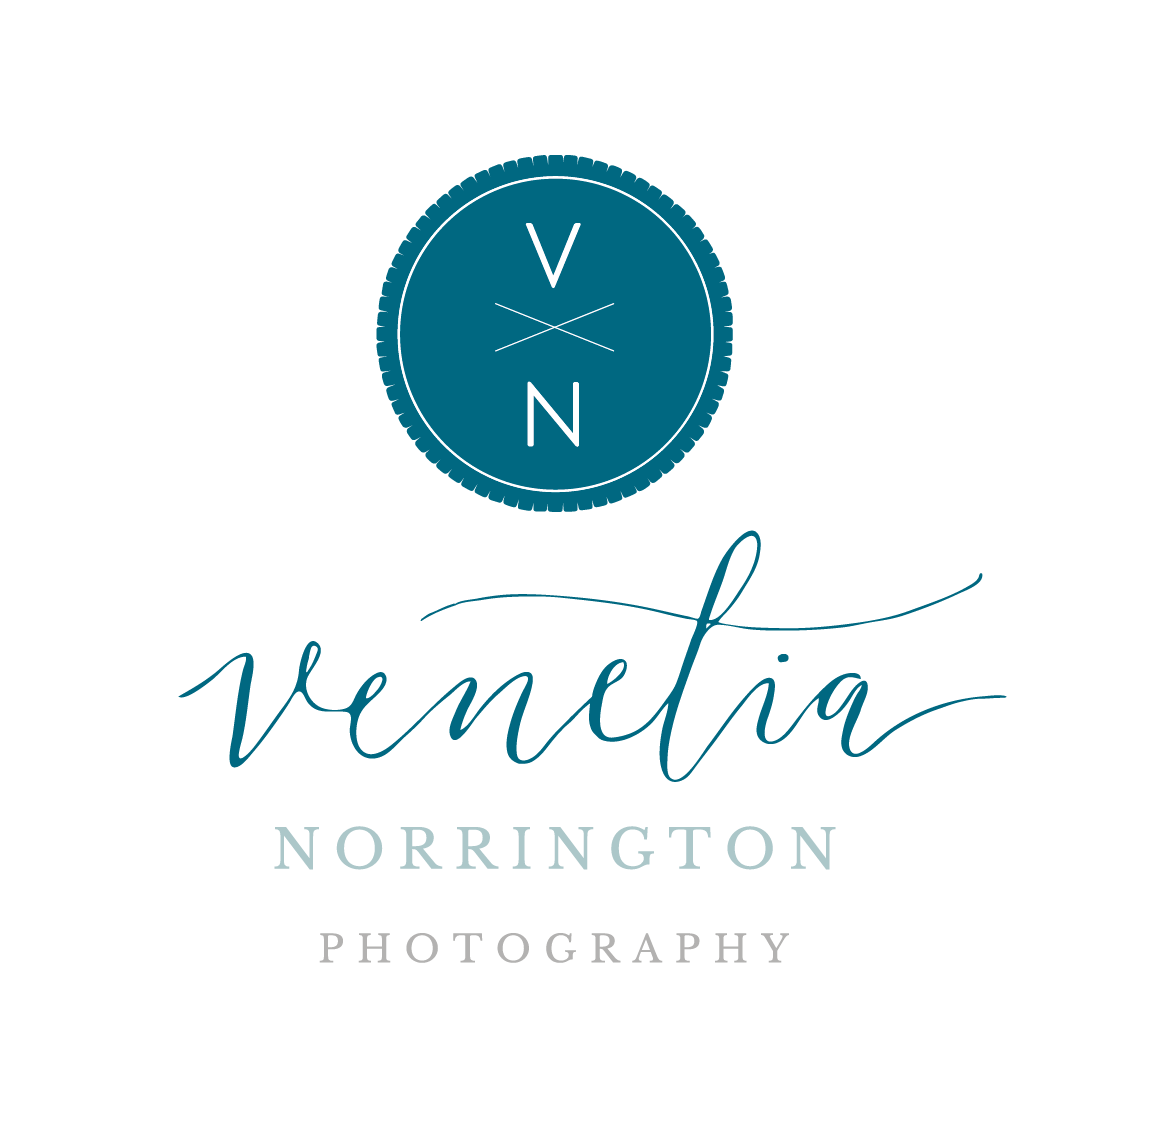 Venetia Norrington Photography